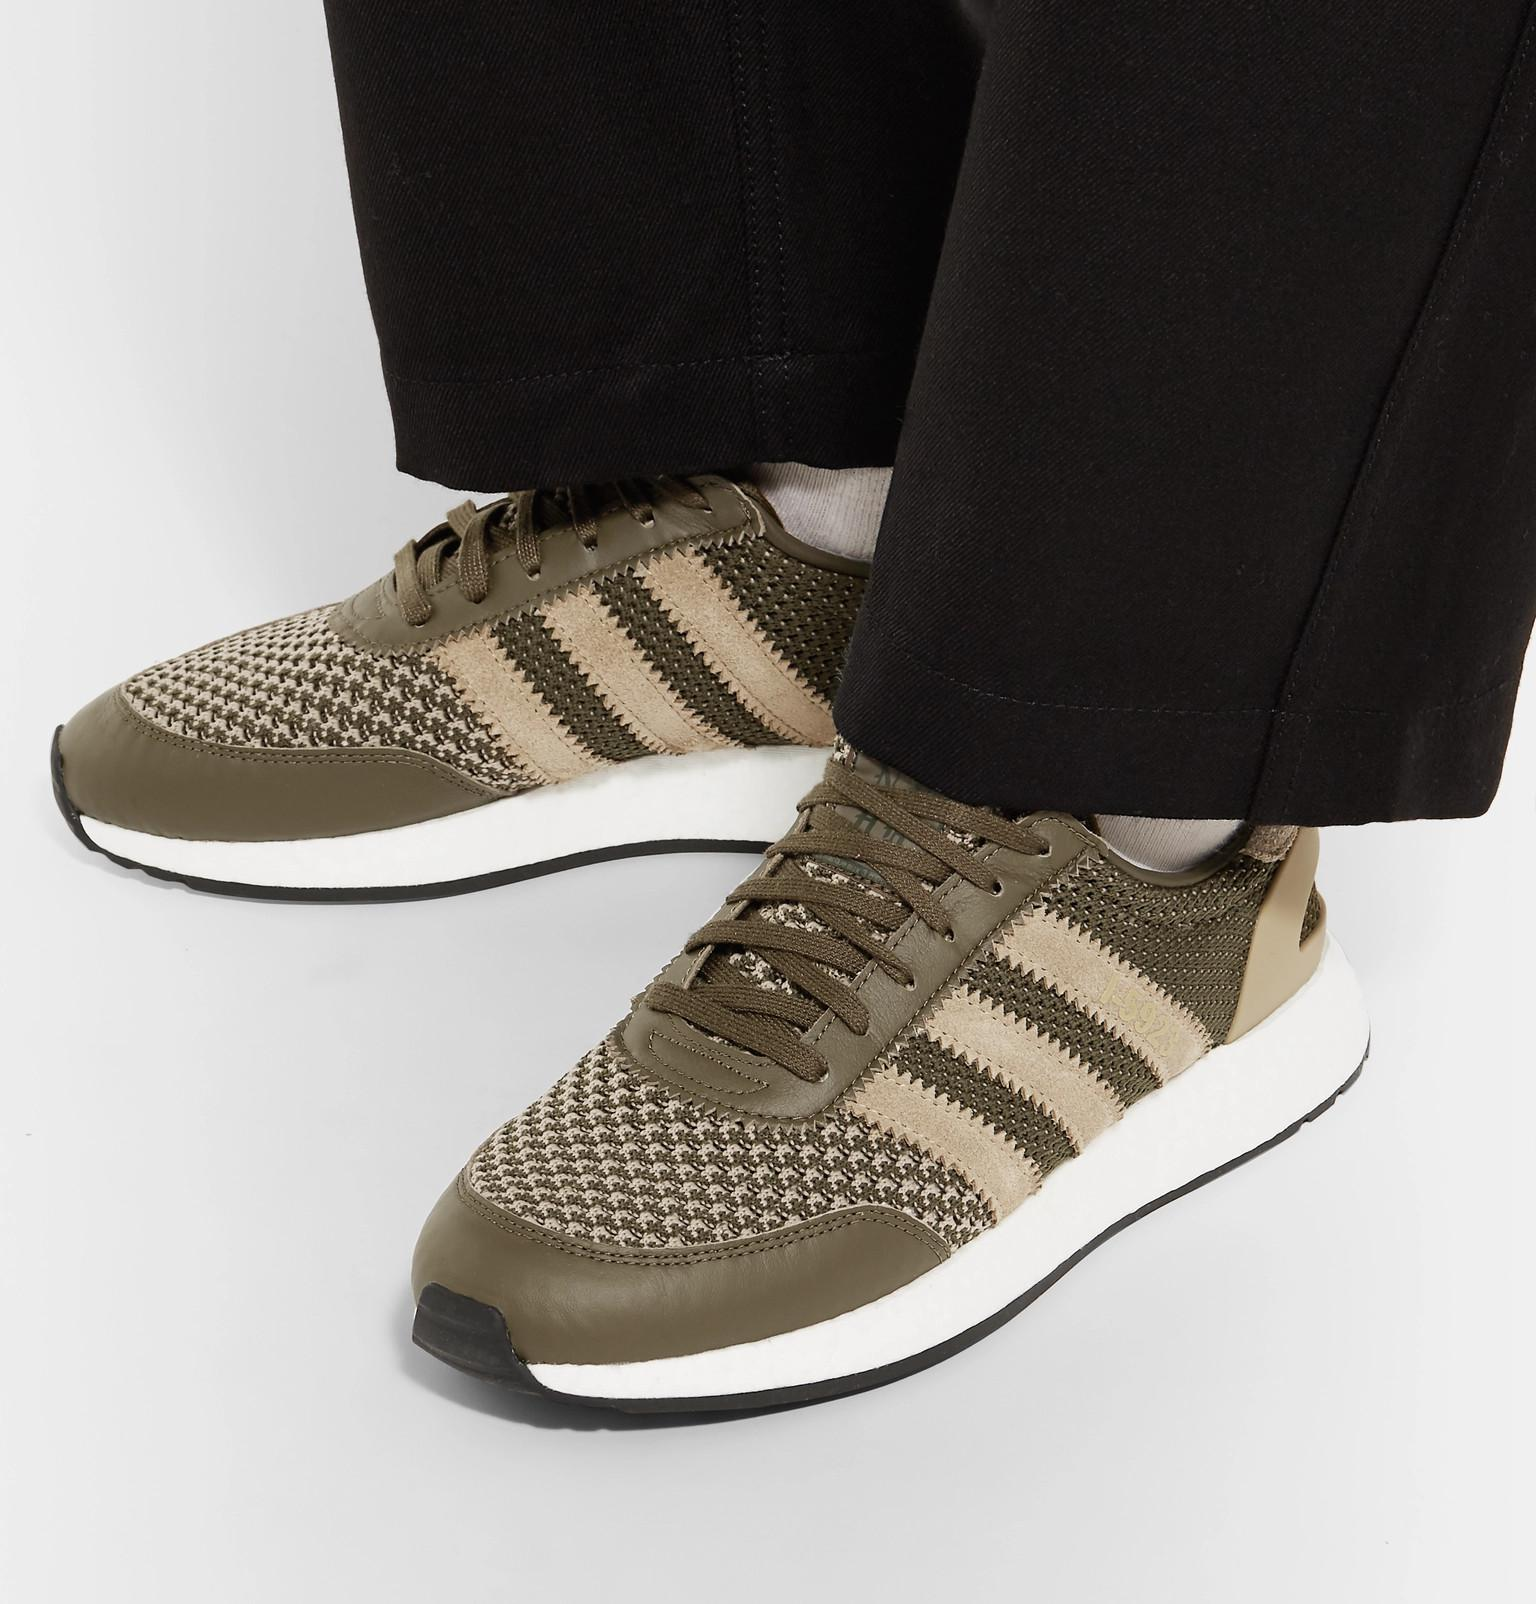 bc8d957c690f adidas Originals + Neighborhood I-5923 Suede And Leather-trimmed ...